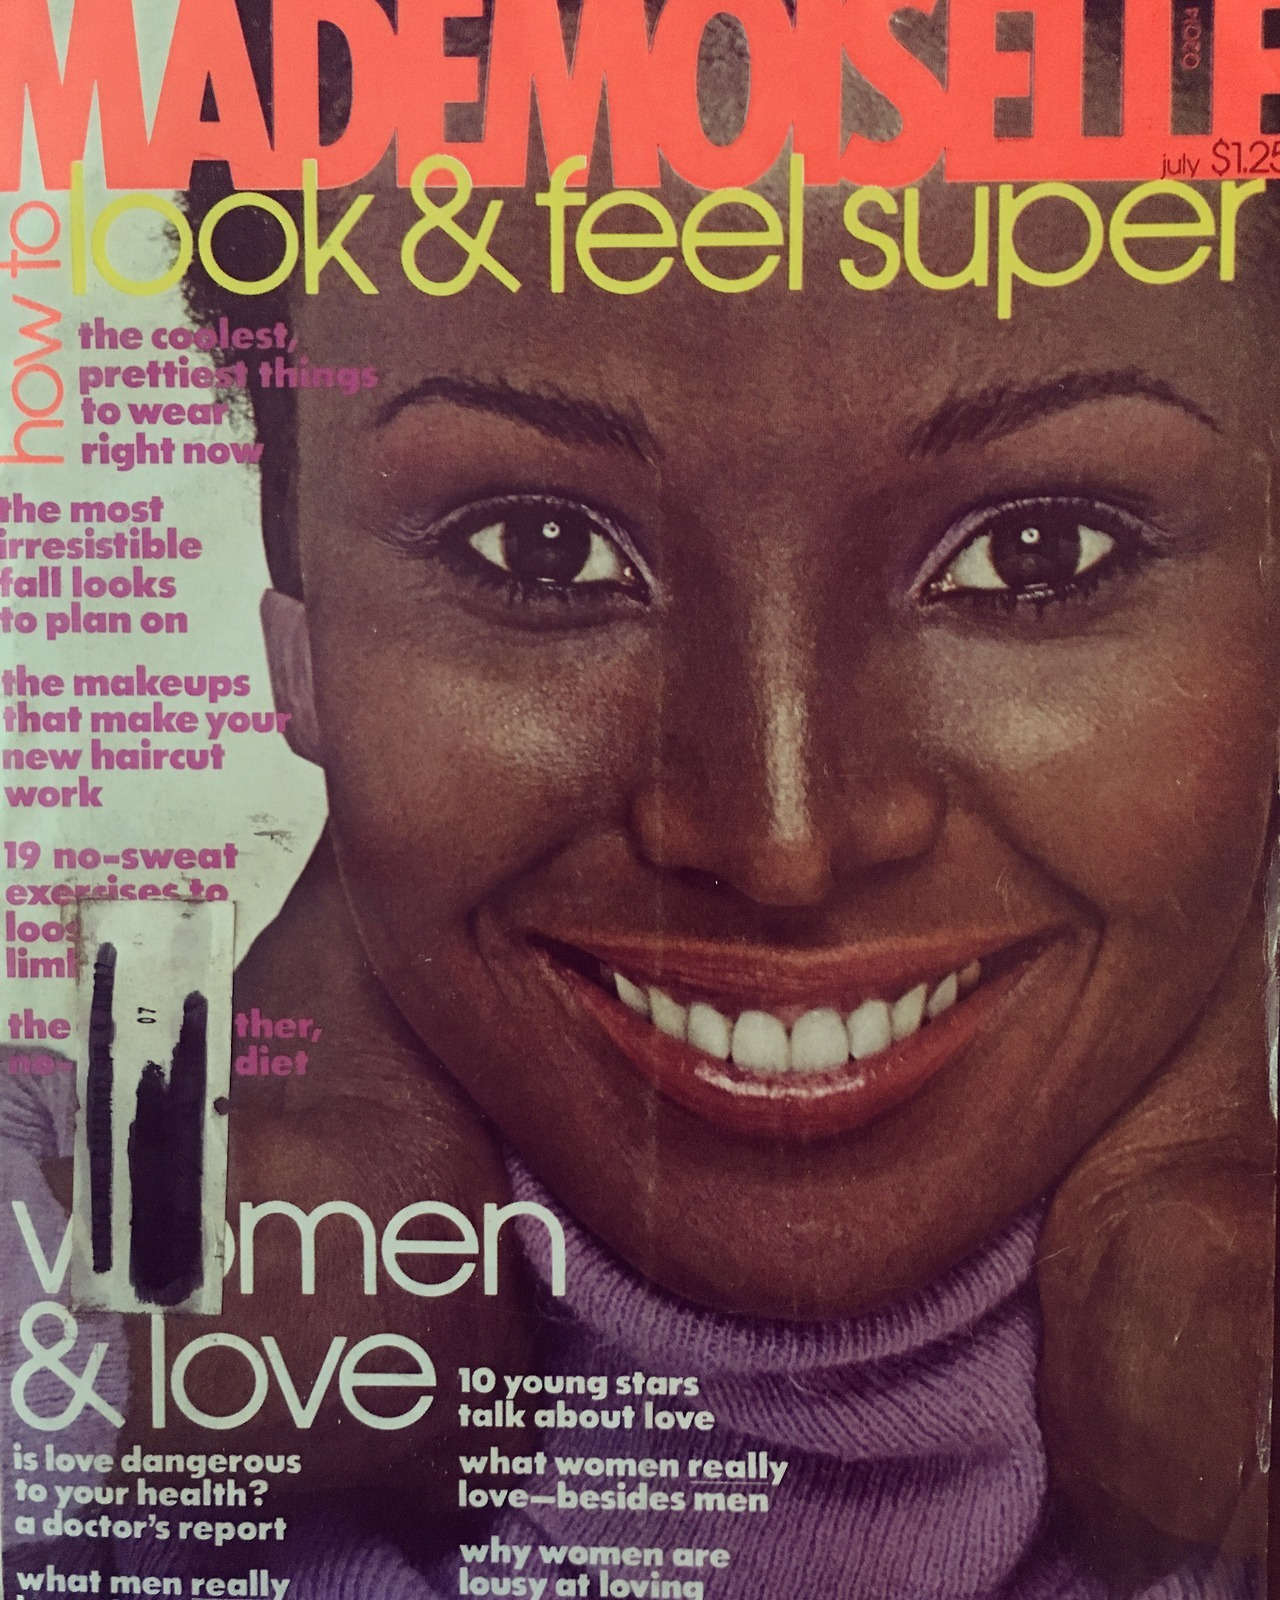 Mademoiselle cover. July 1976   One recent request was to post more black models here, particularly from the  '50s and  '60s, but honestly, that era is quite a bit dry when it comes to diversity. For the most part, fashion magazines were  very  segregated before the mid'60s. In the'70s the doors started opening more from mainstream publications, but even now, there is not as much diversity as one would think. We can do a lot better.